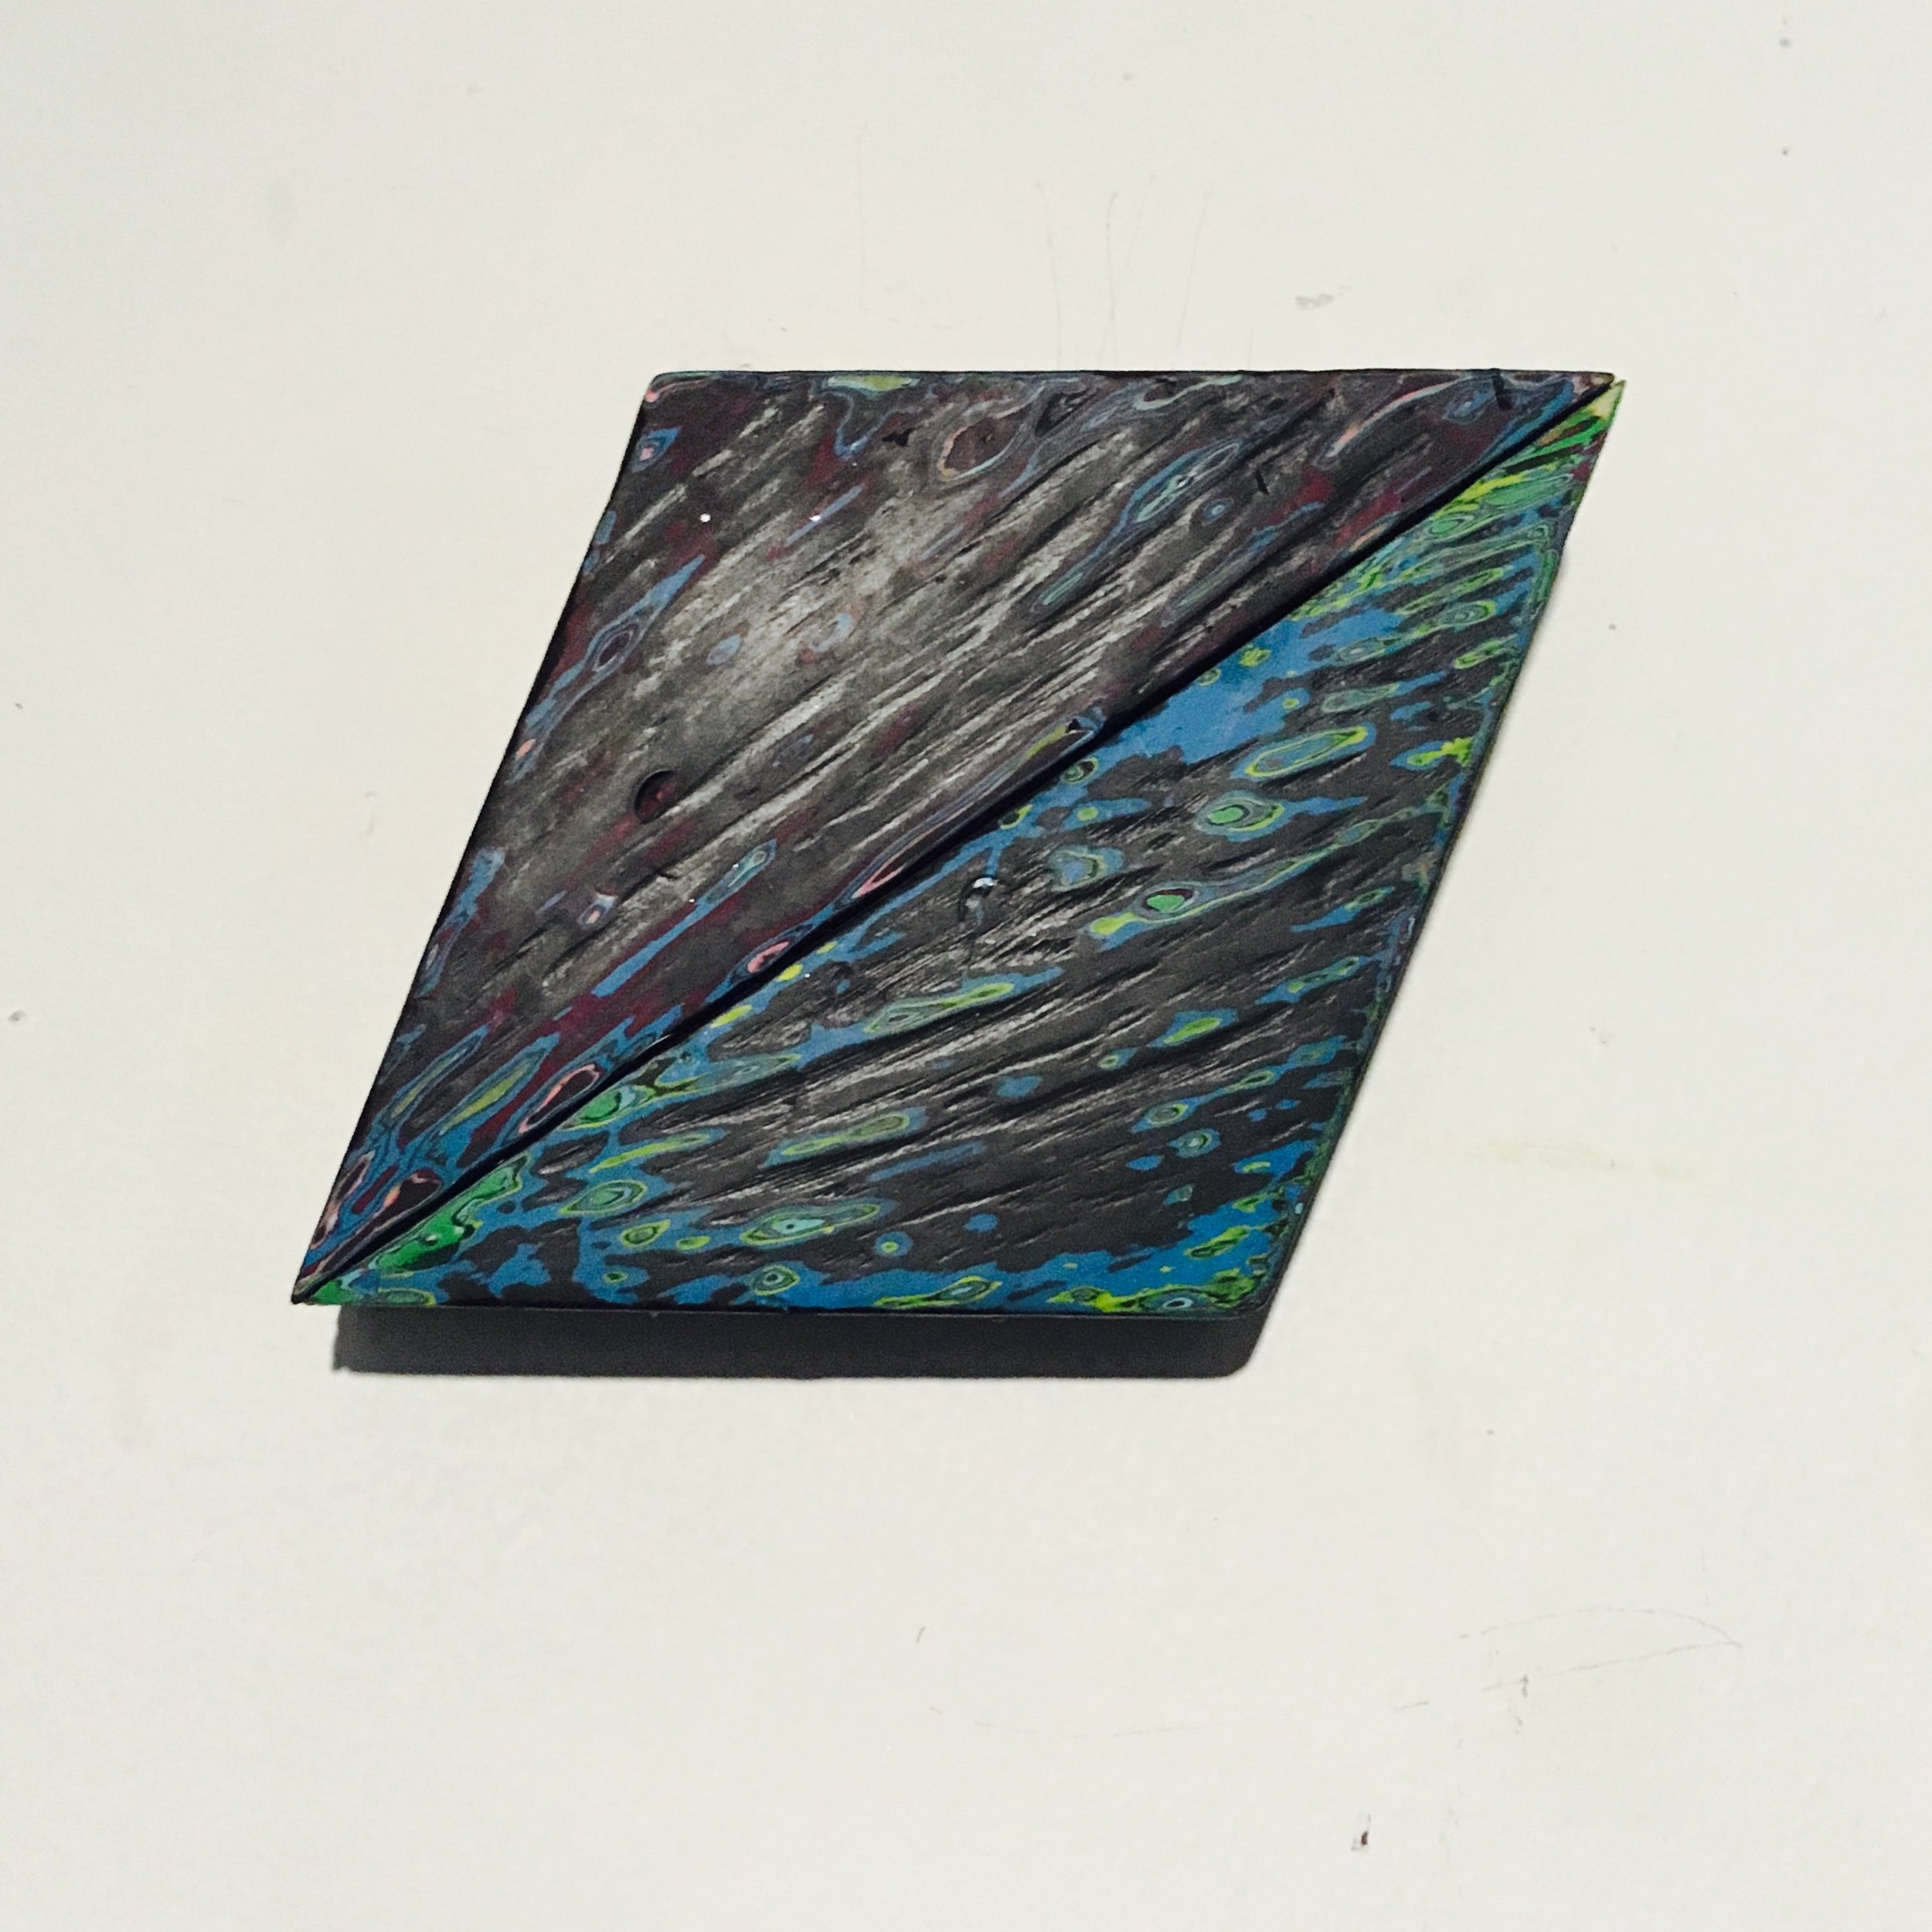 "Rhombus 3 Reduced Acrylic on Found Wood, Diptych 2015 3""x4"" SOLD"